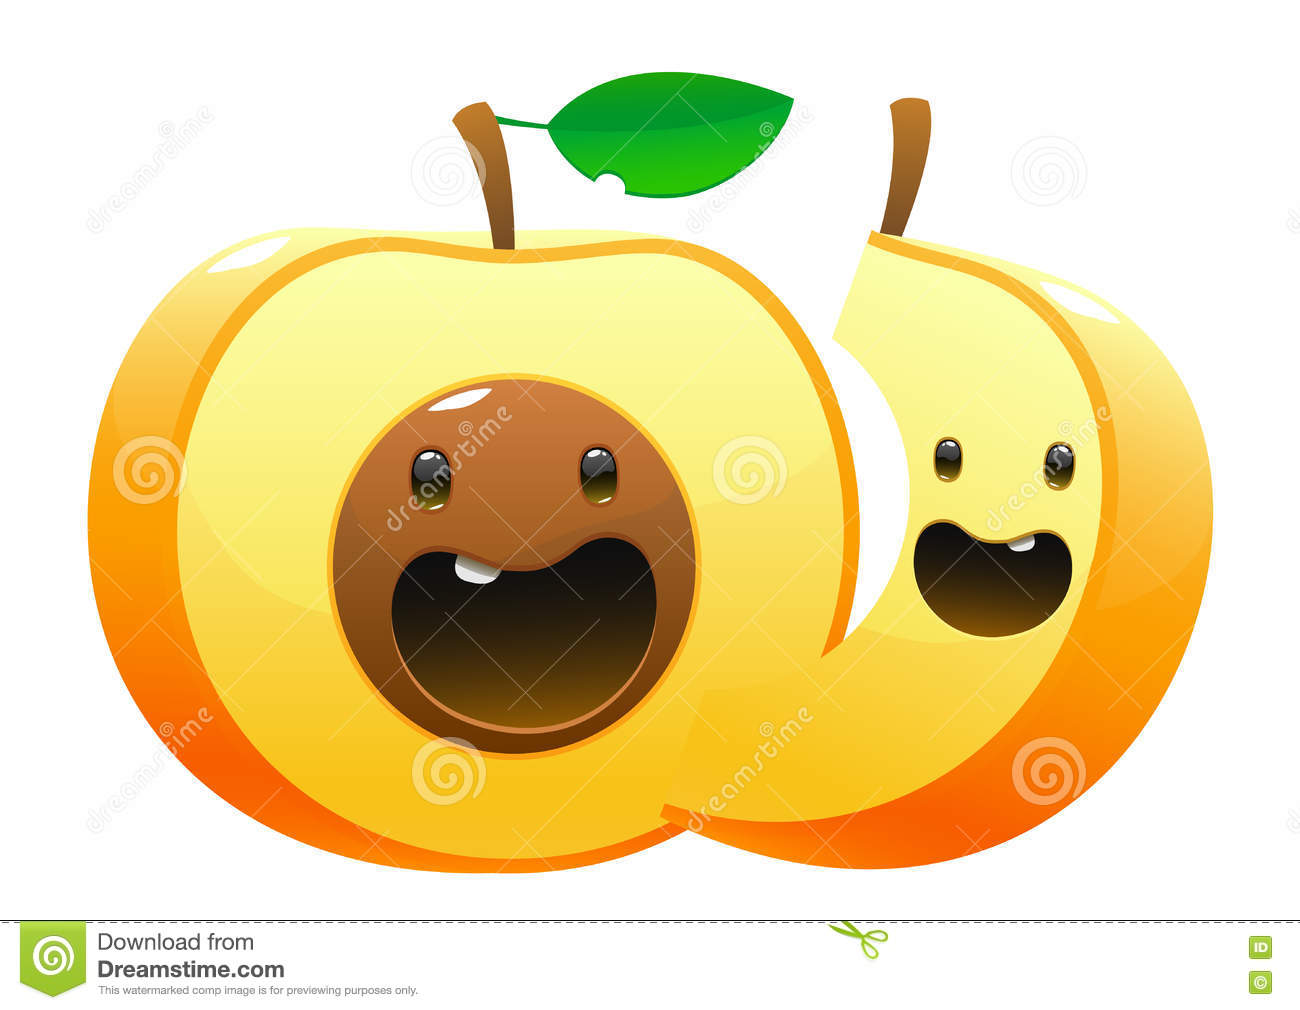 Peach Cartoon Two Character Cute Fun Stock Vector - Illustration of chopped. agriculture: 75036051